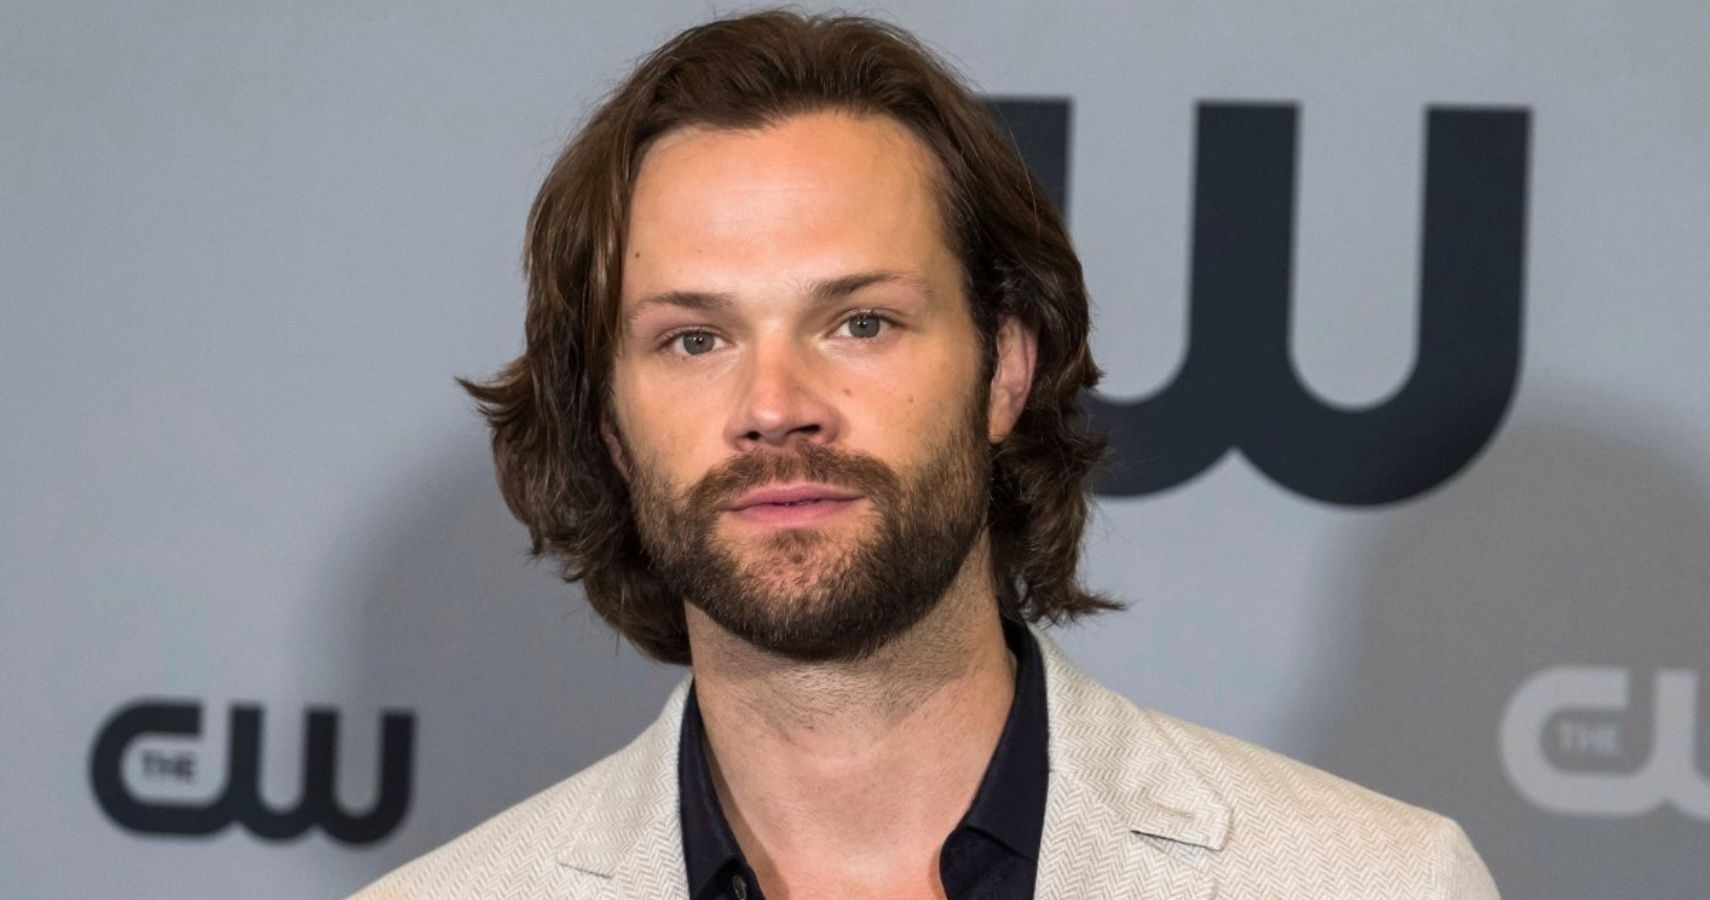 Jared Padalecki Shares Nostalgic Message While In Canada For 'Supernatural' Final Series